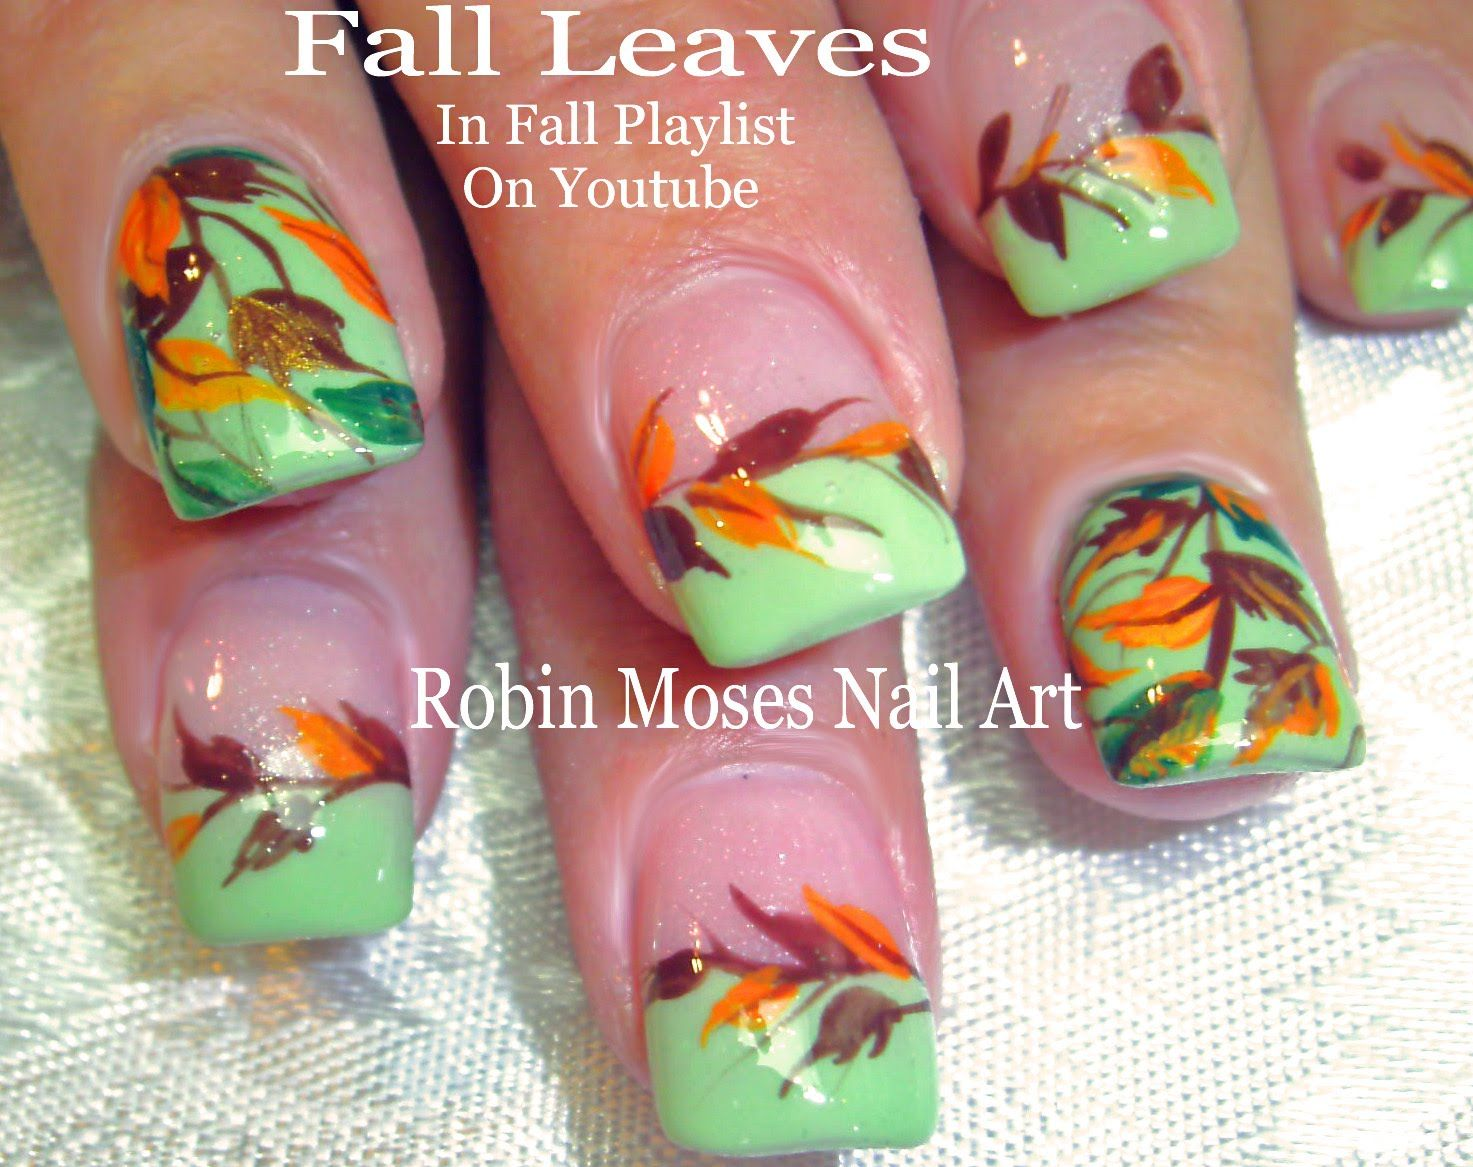 Nail art diy fall nails easy autumn leaves design tutorial polish your image with our mani must haves our perfect nail polish is at your fingertips in every new nail color of the season prinsesfo Choice Image